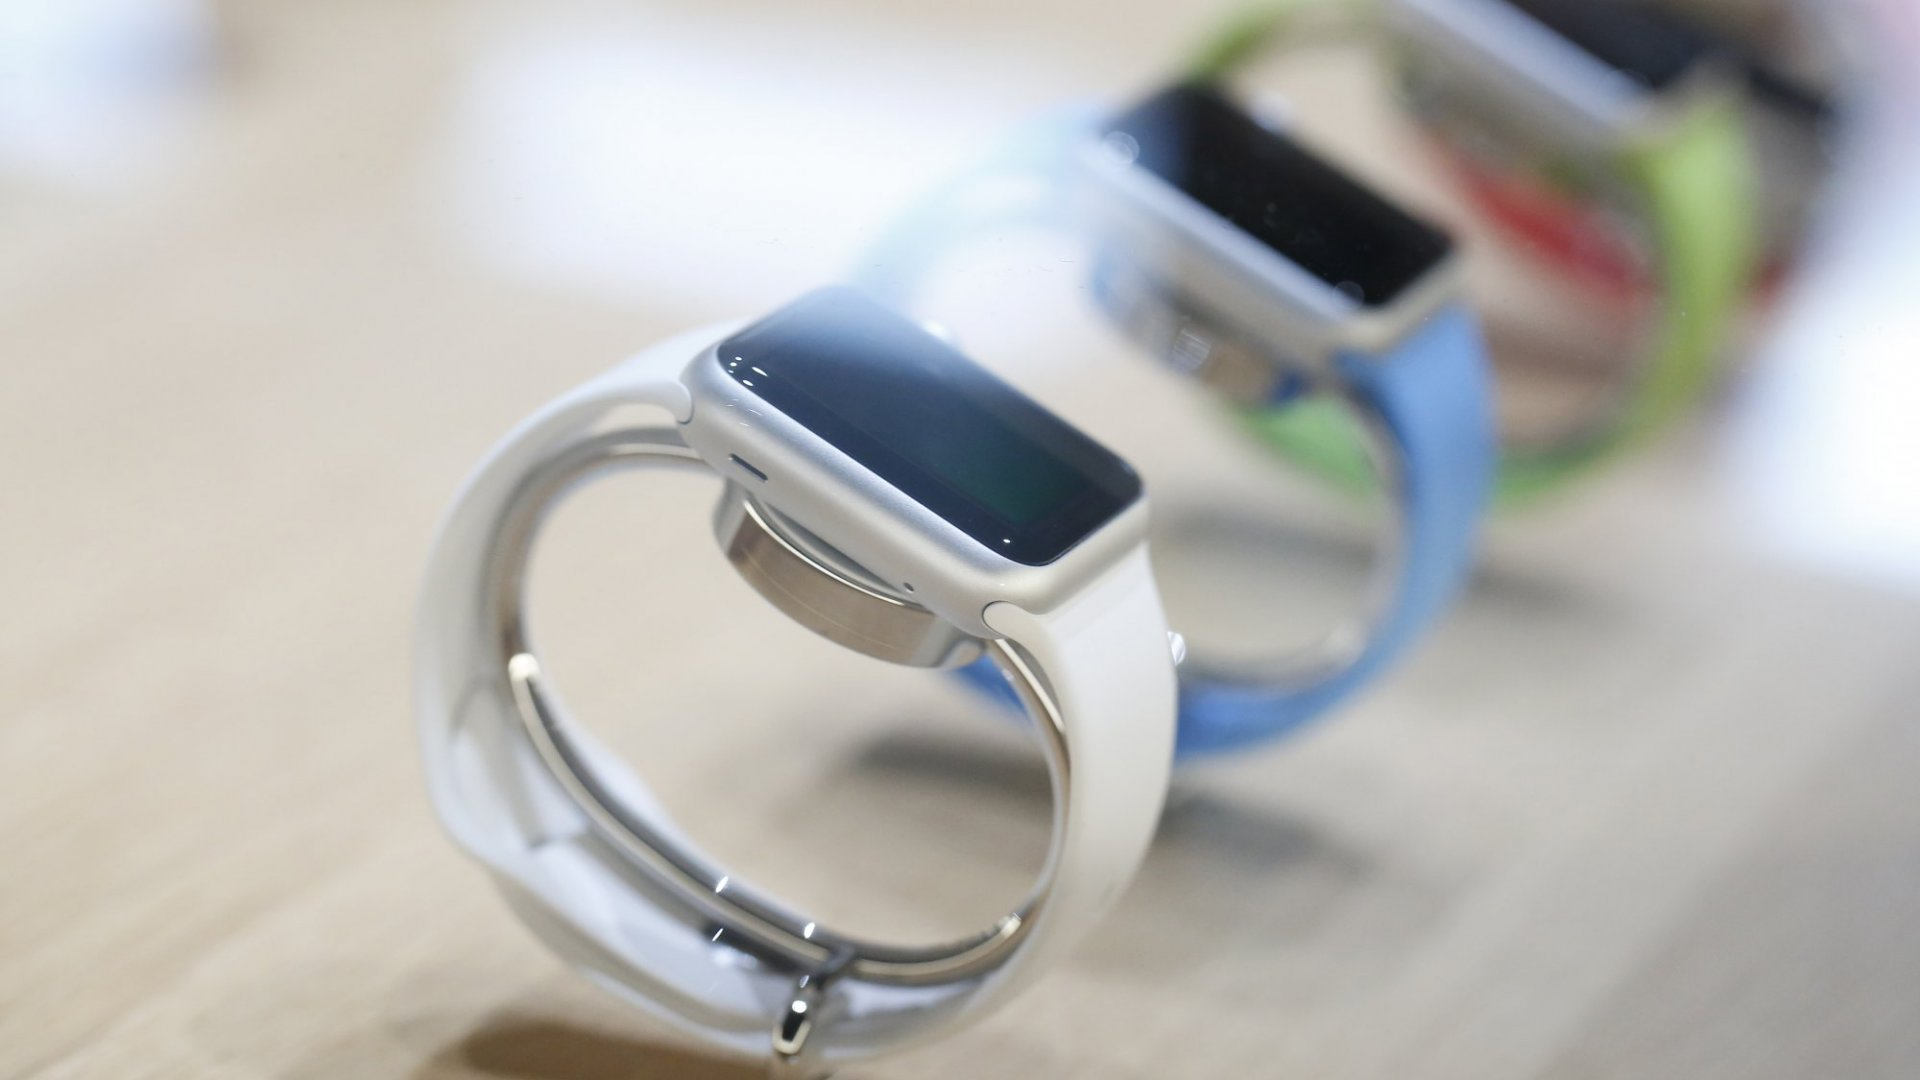 Why Wearables and Smartwatches Have Failed to Live Up to Their Hype